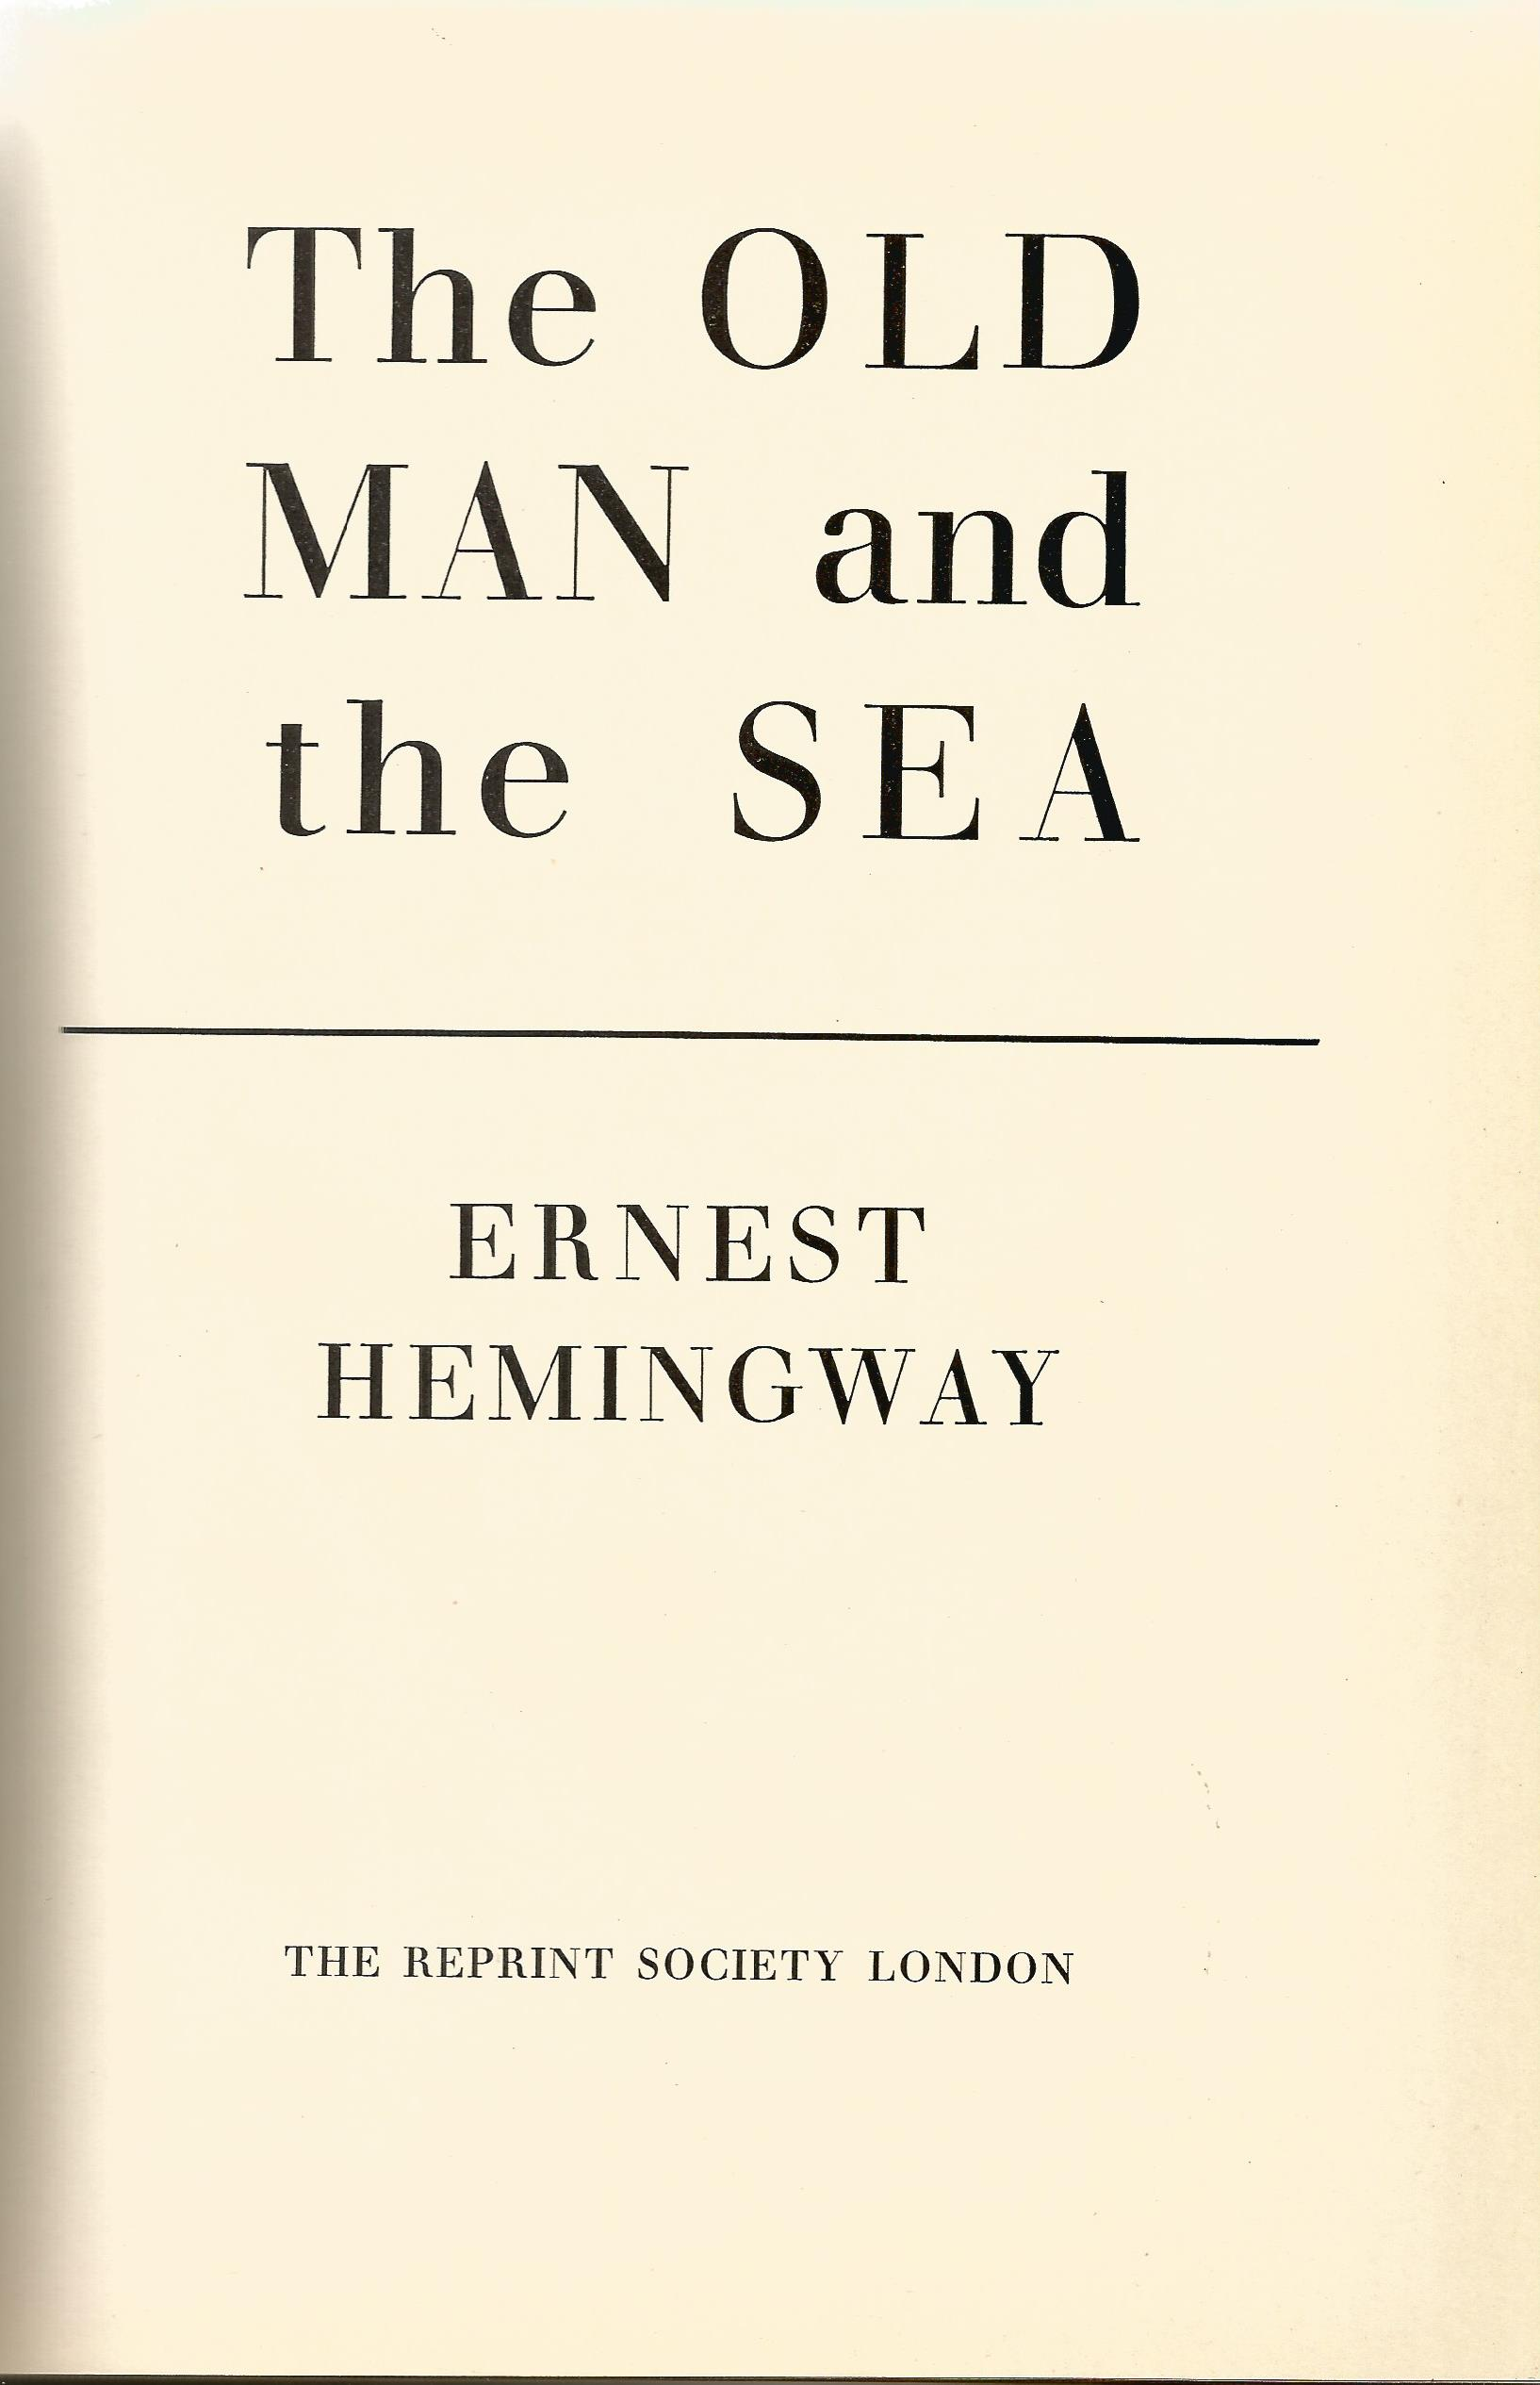 Hardback Book The Old Man and the Sea by Ernest Hemingway 1953 First Illustrated Edition - Image 2 of 3